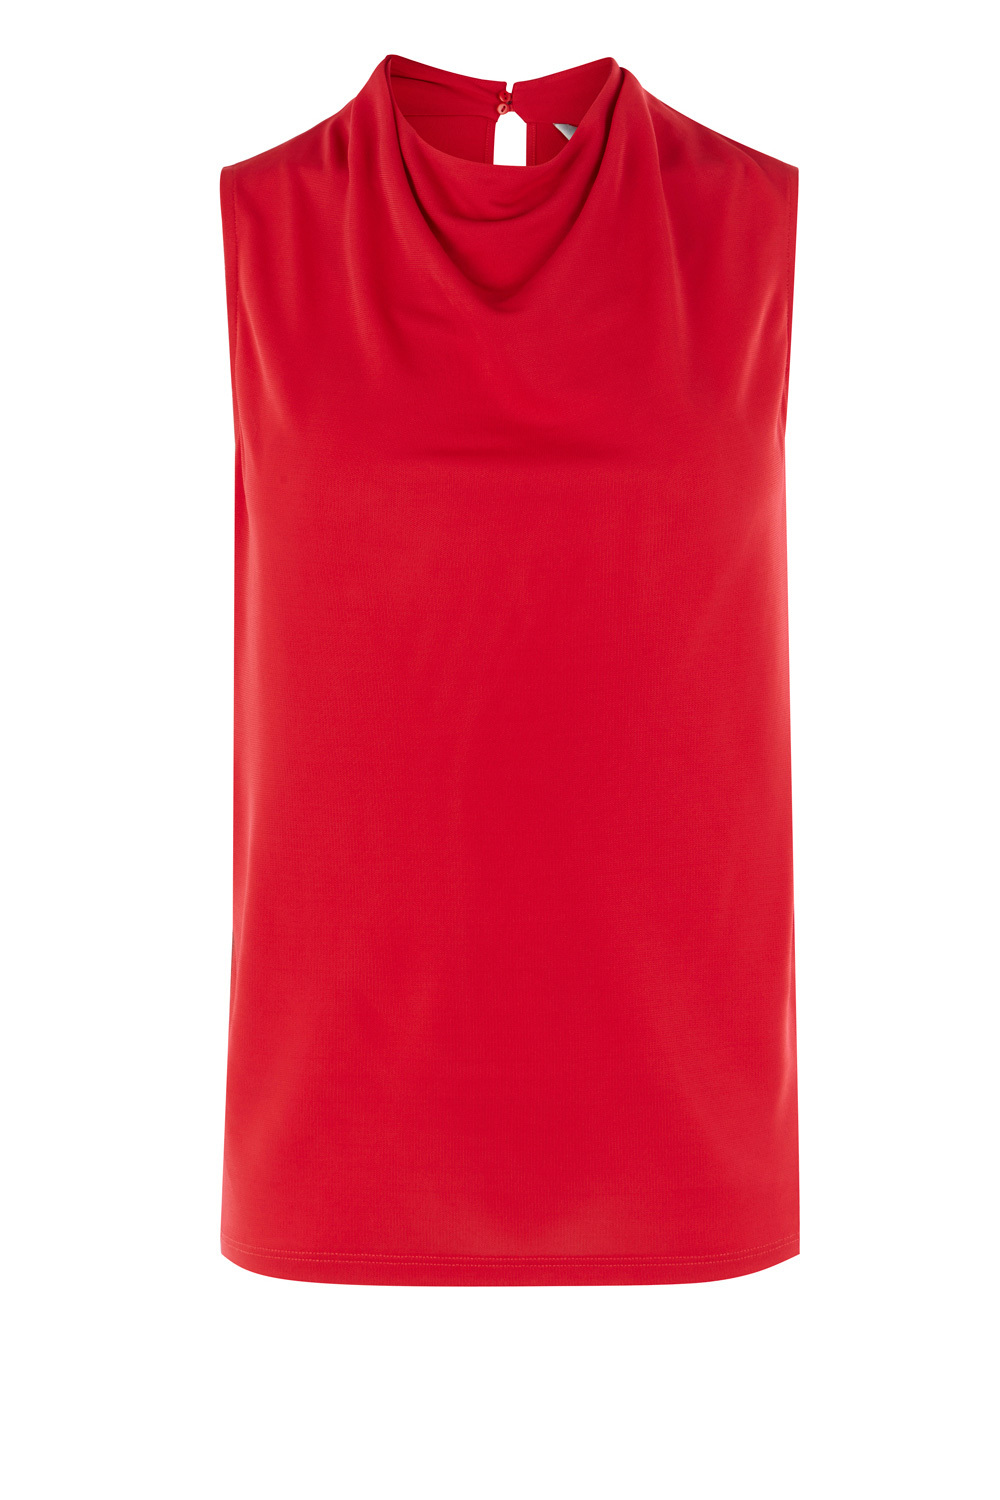 Evita Cowl Neck Top - neckline: v-neck; pattern: plain; sleeve style: sleeveless; predominant colour: true red; occasions: casual, creative work; length: standard; style: top; fibres: polyester/polyamide - 100%; fit: straight cut; sleeve length: sleeveless; pattern type: fabric; texture group: jersey - stretchy/drapey; season: a/w 2016; wardrobe: highlight